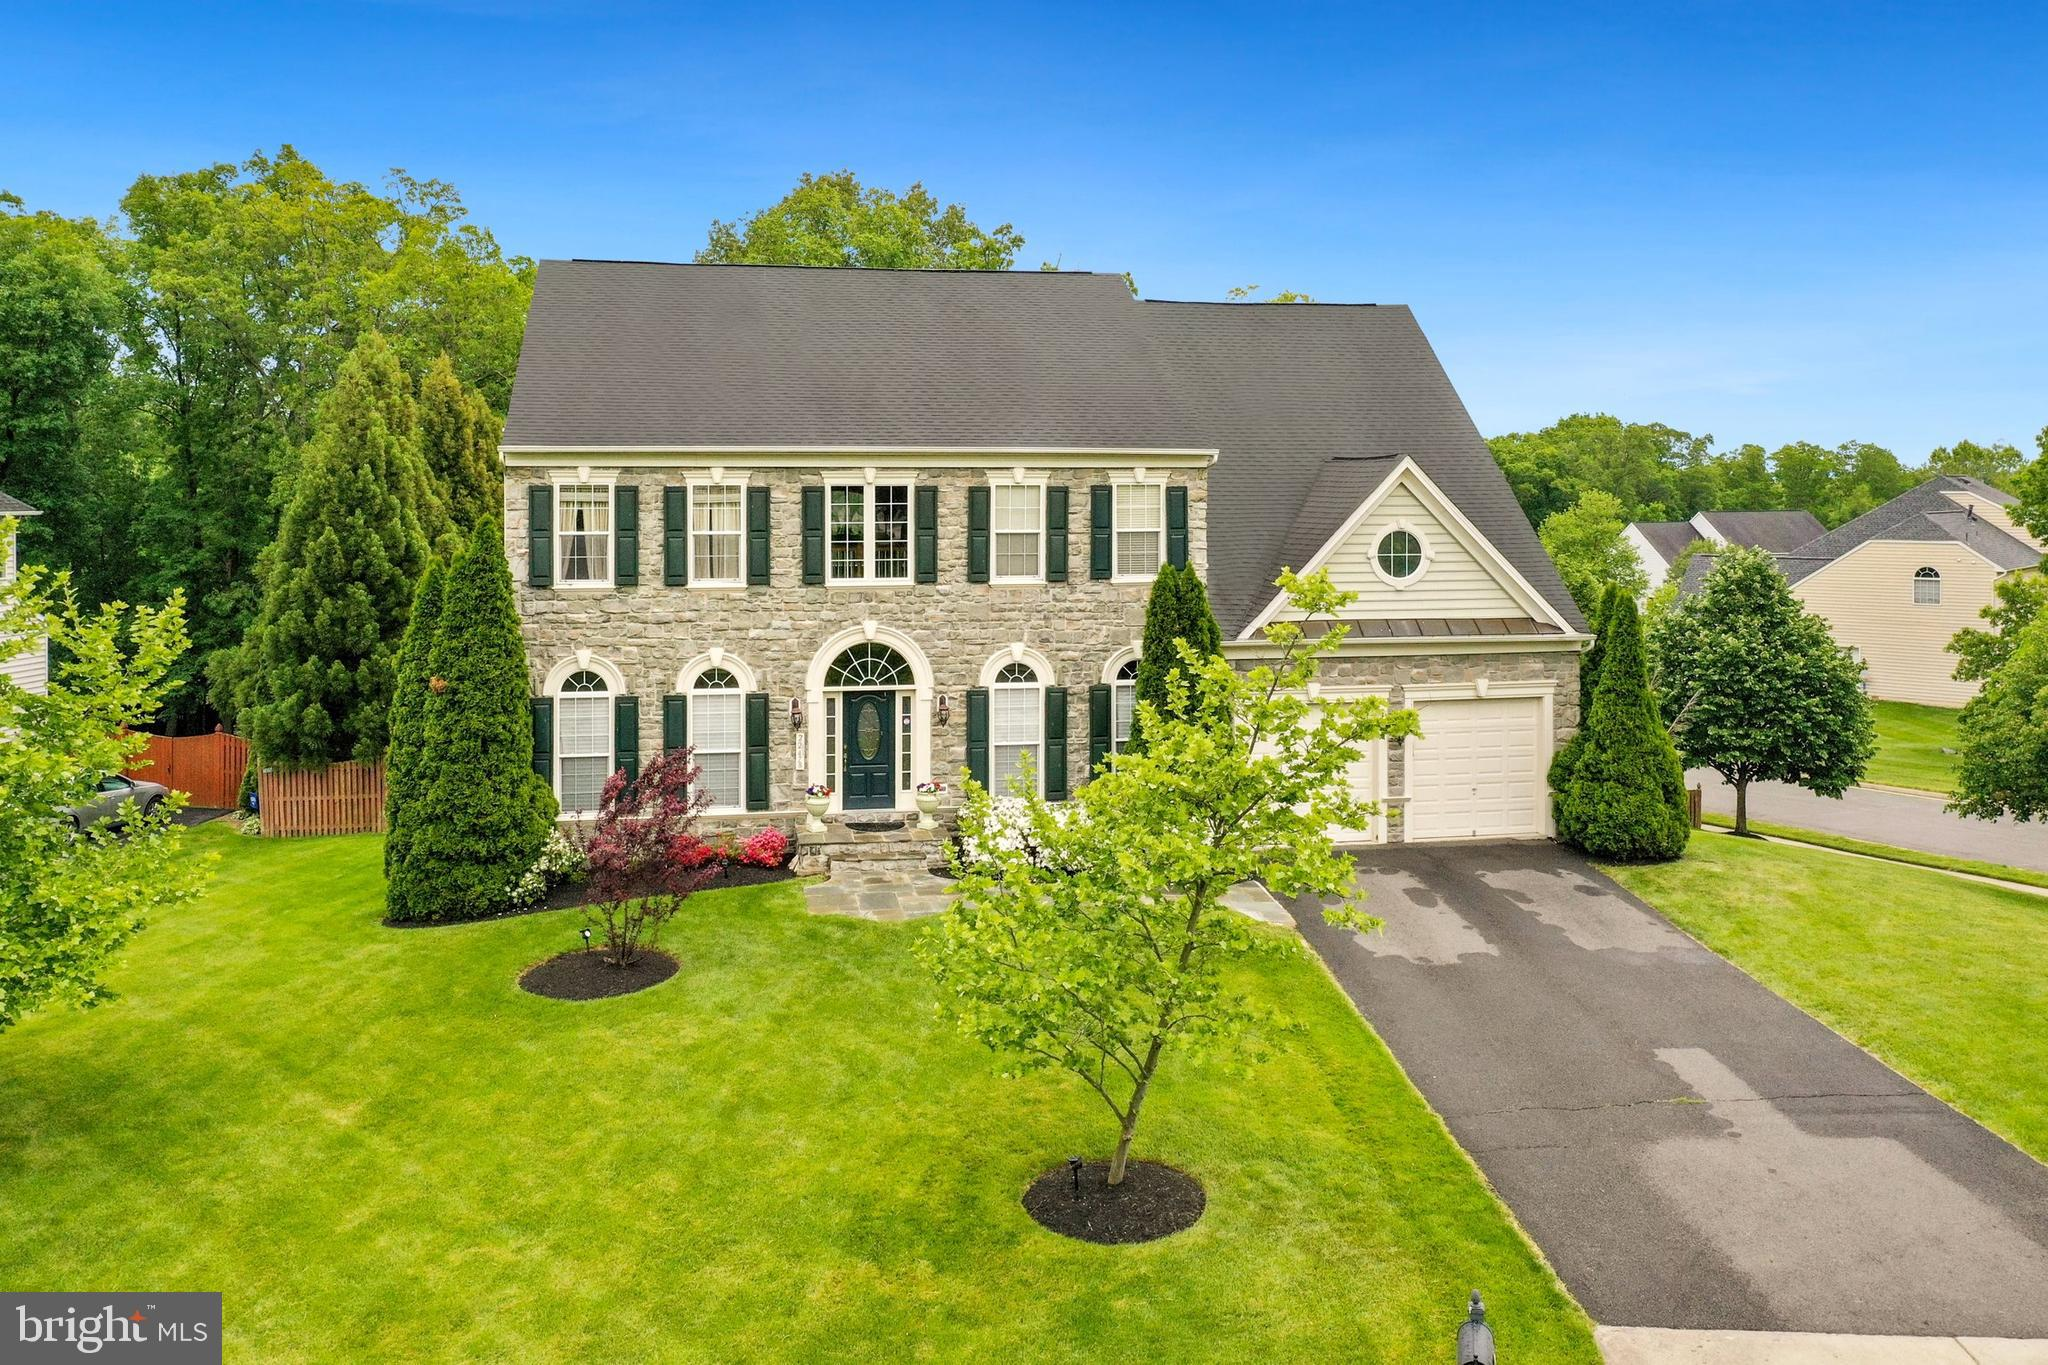 Open House this Sunday 1-4. Stately Greenbriar model offering 6,000 sf of finished luxury living spa